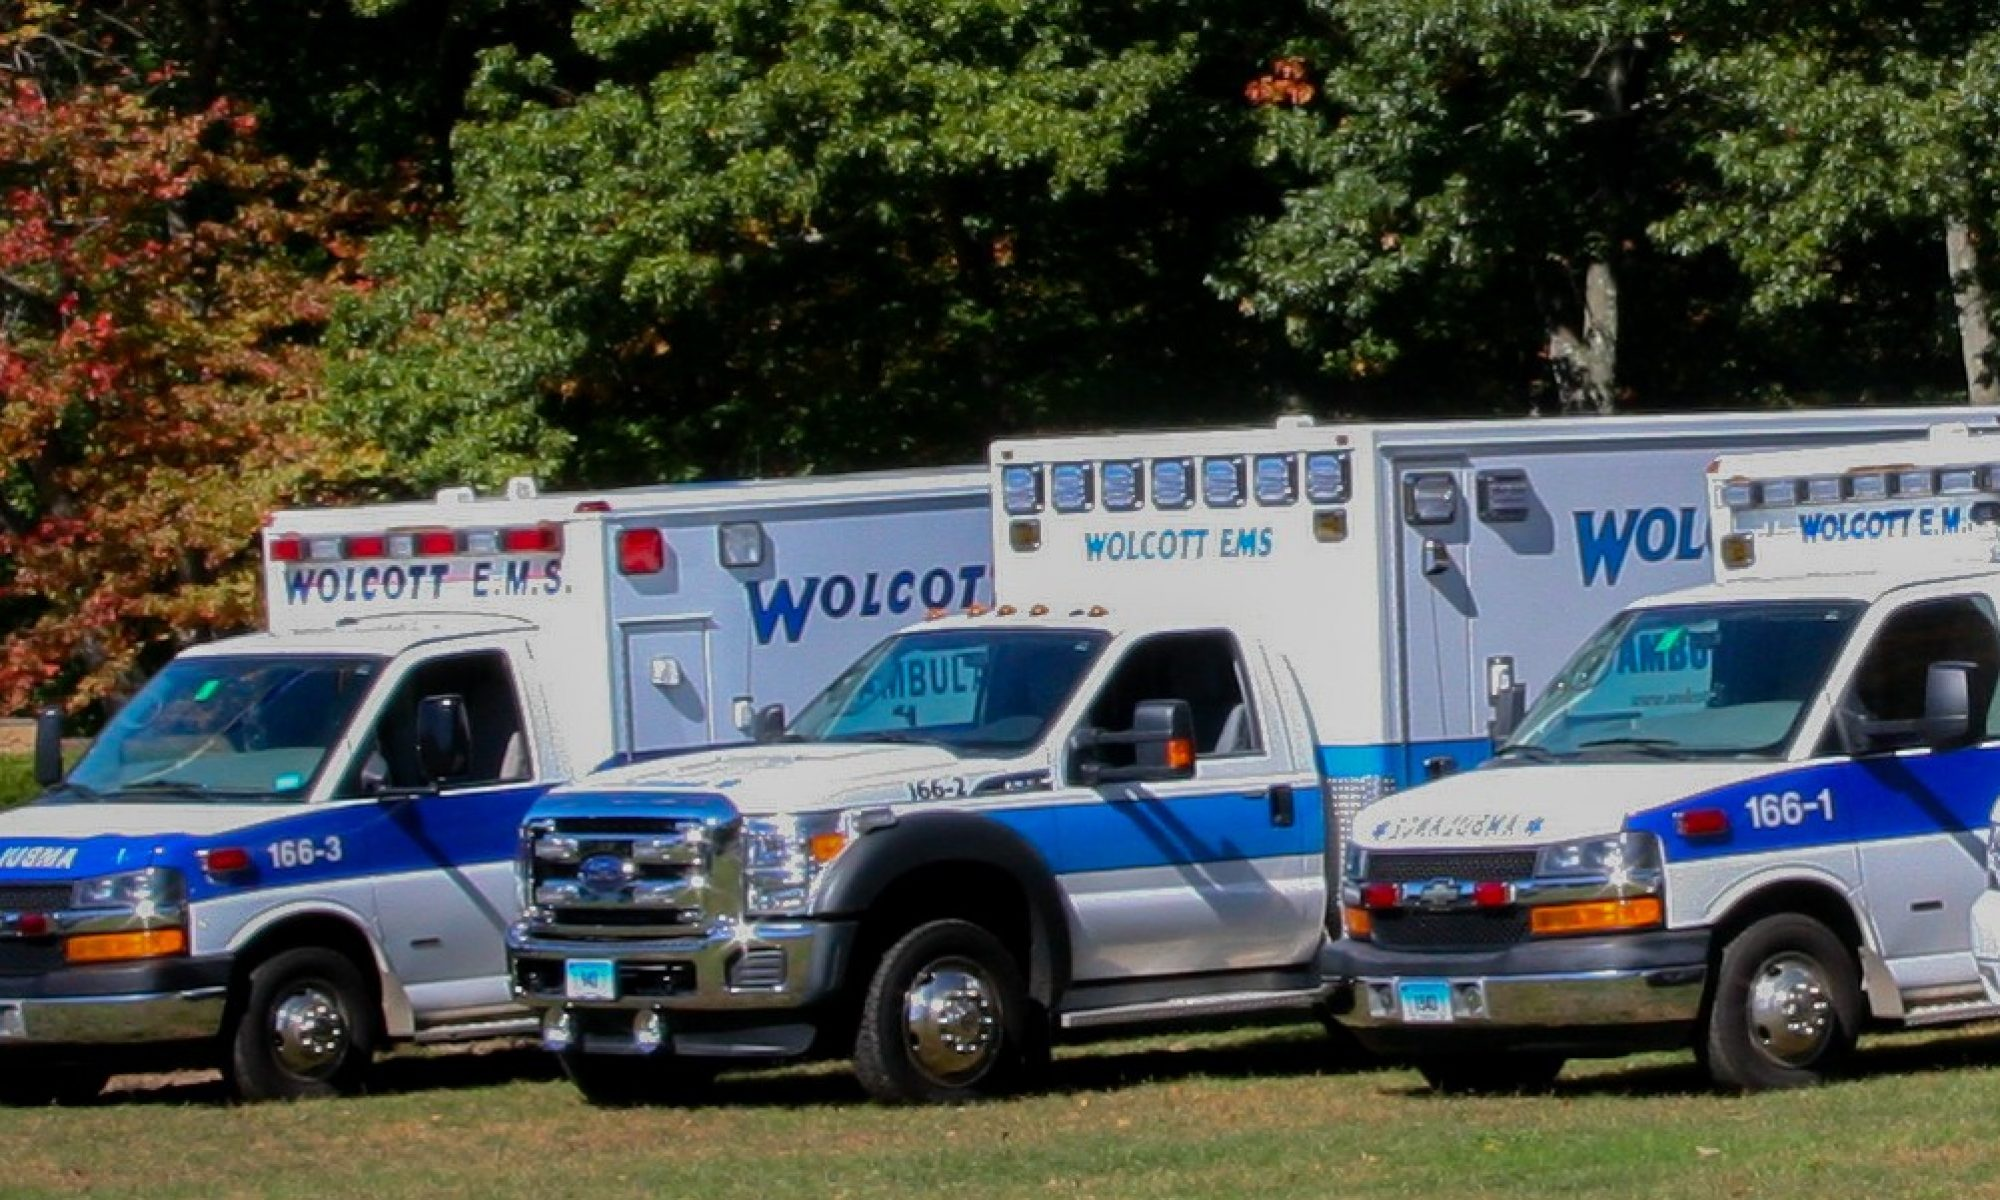 Wolcott Volunteer Ambulance Association